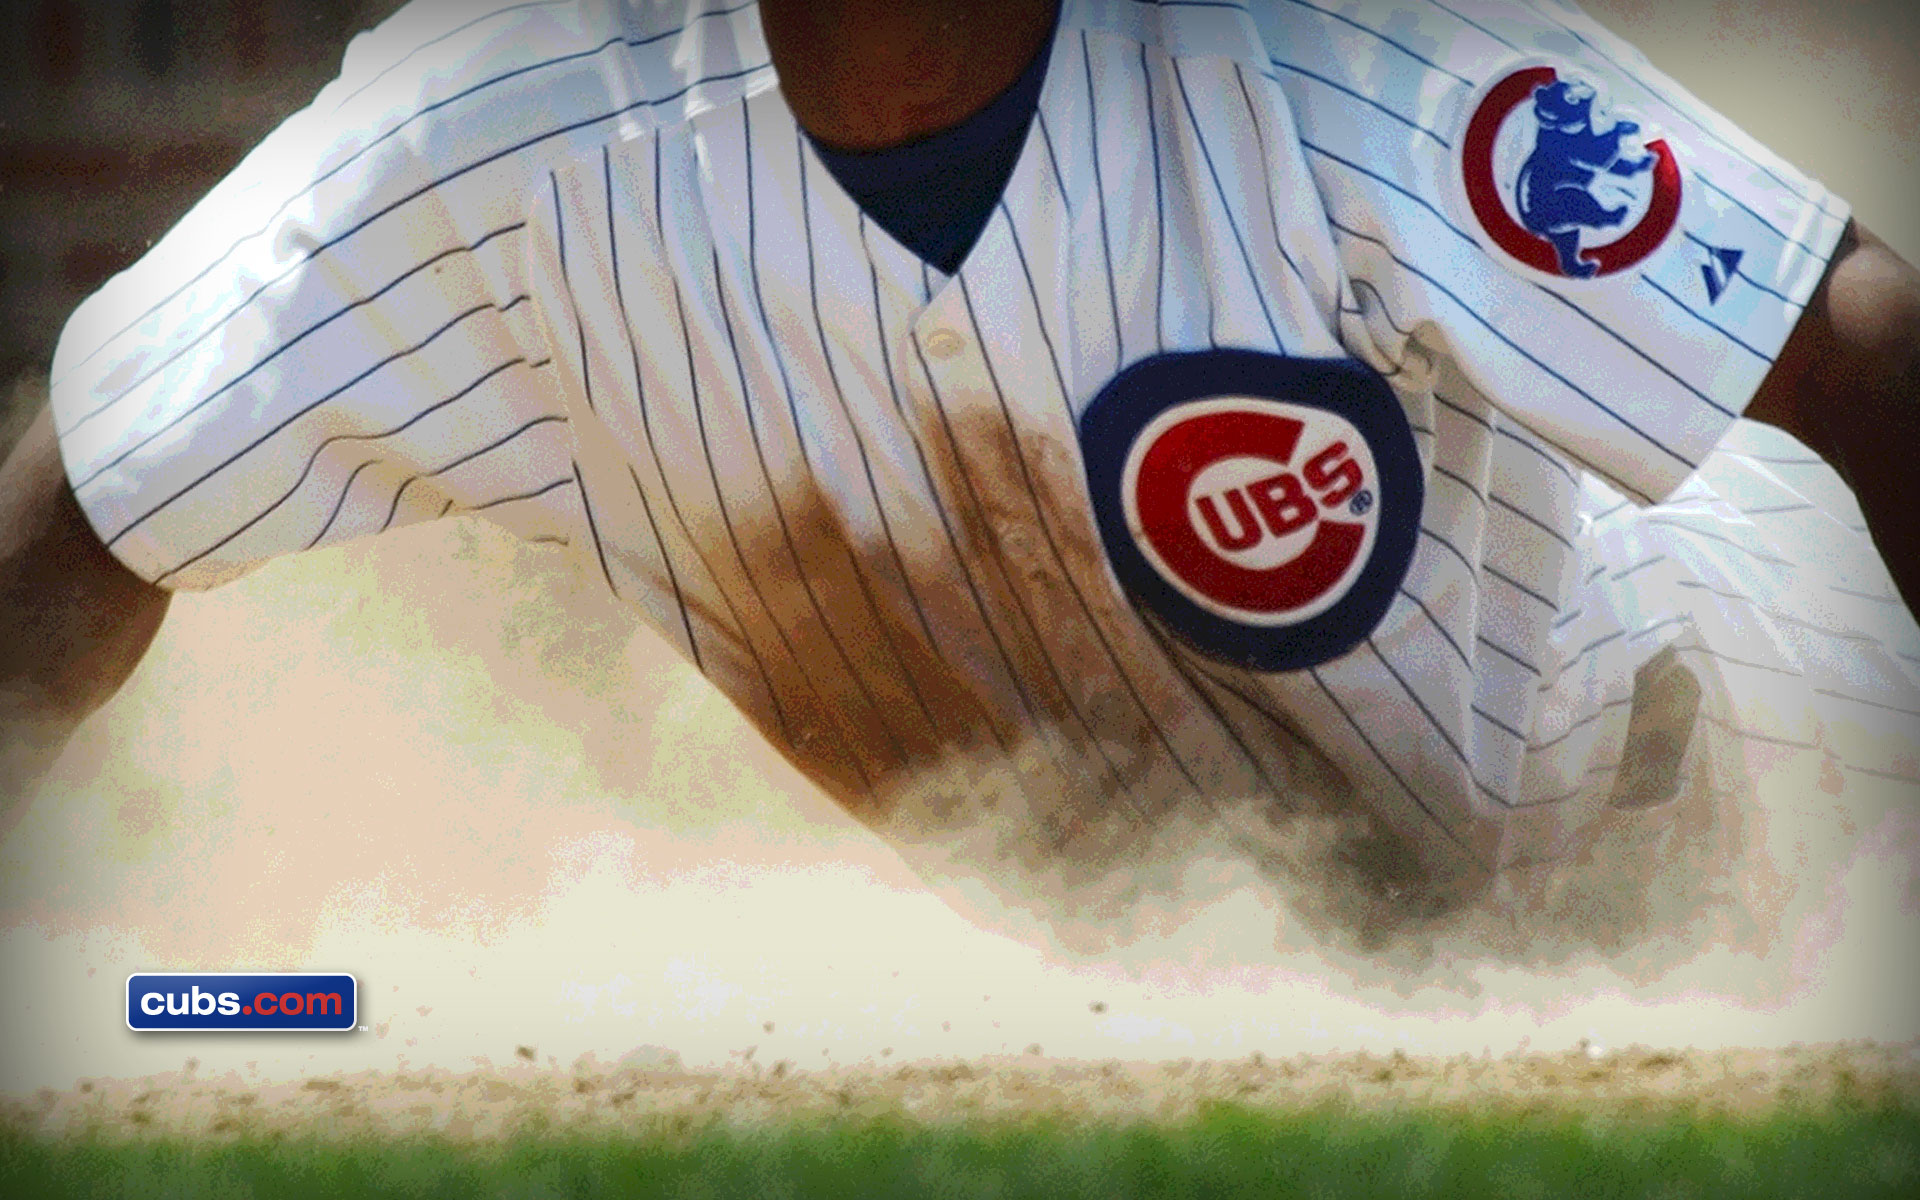 Chicago Cubs Iphone 5 Wallpaper Chicago cubs 1920x1200